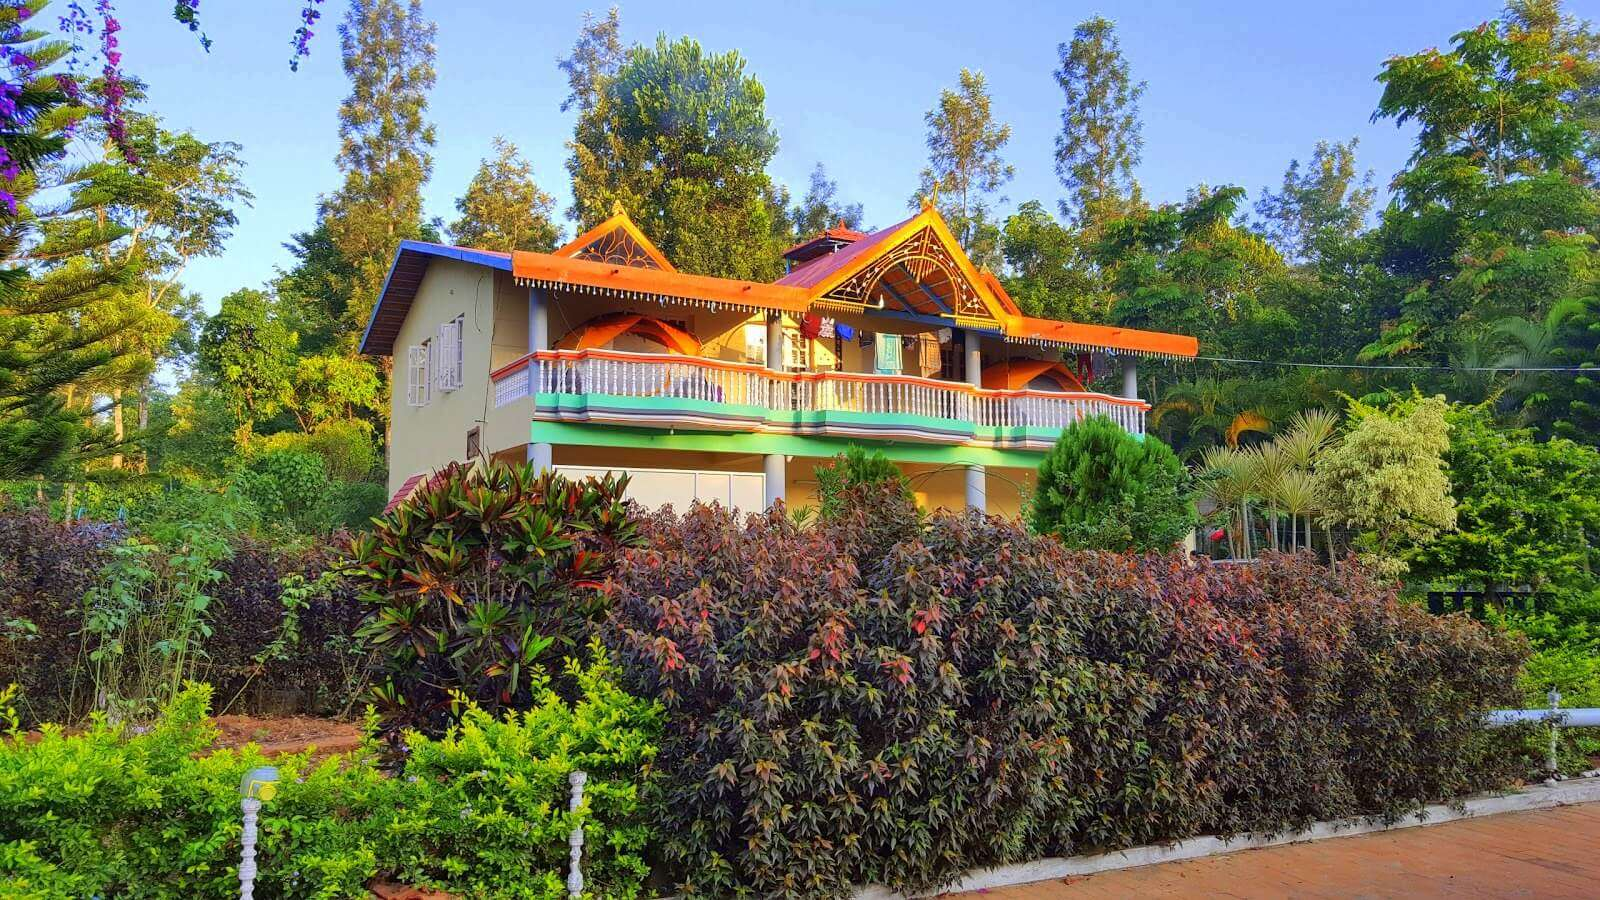 a colorful homestay surrounded by a garden